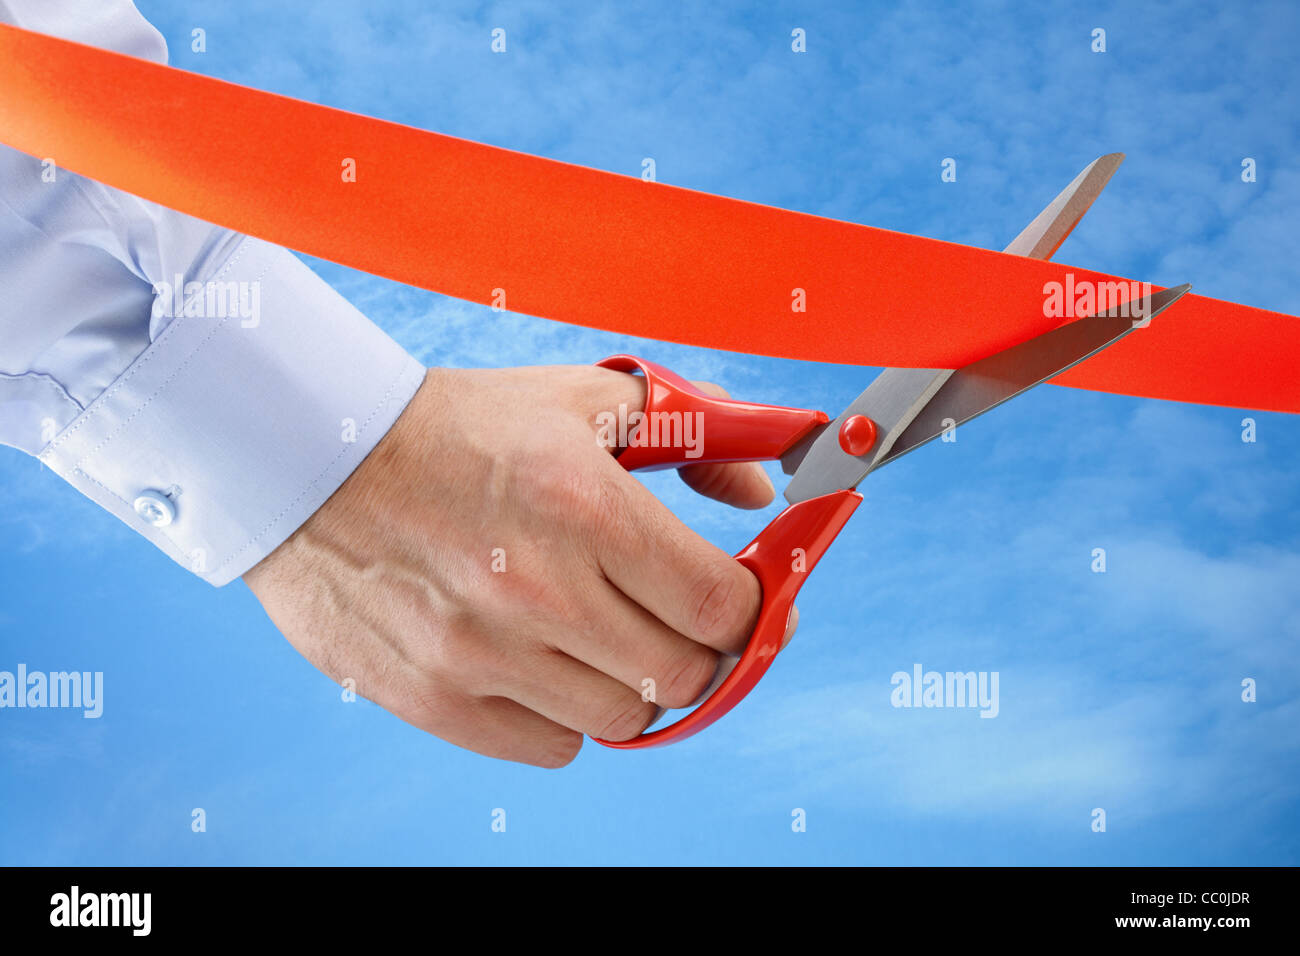 Cutting a red ribbon - Stock Image